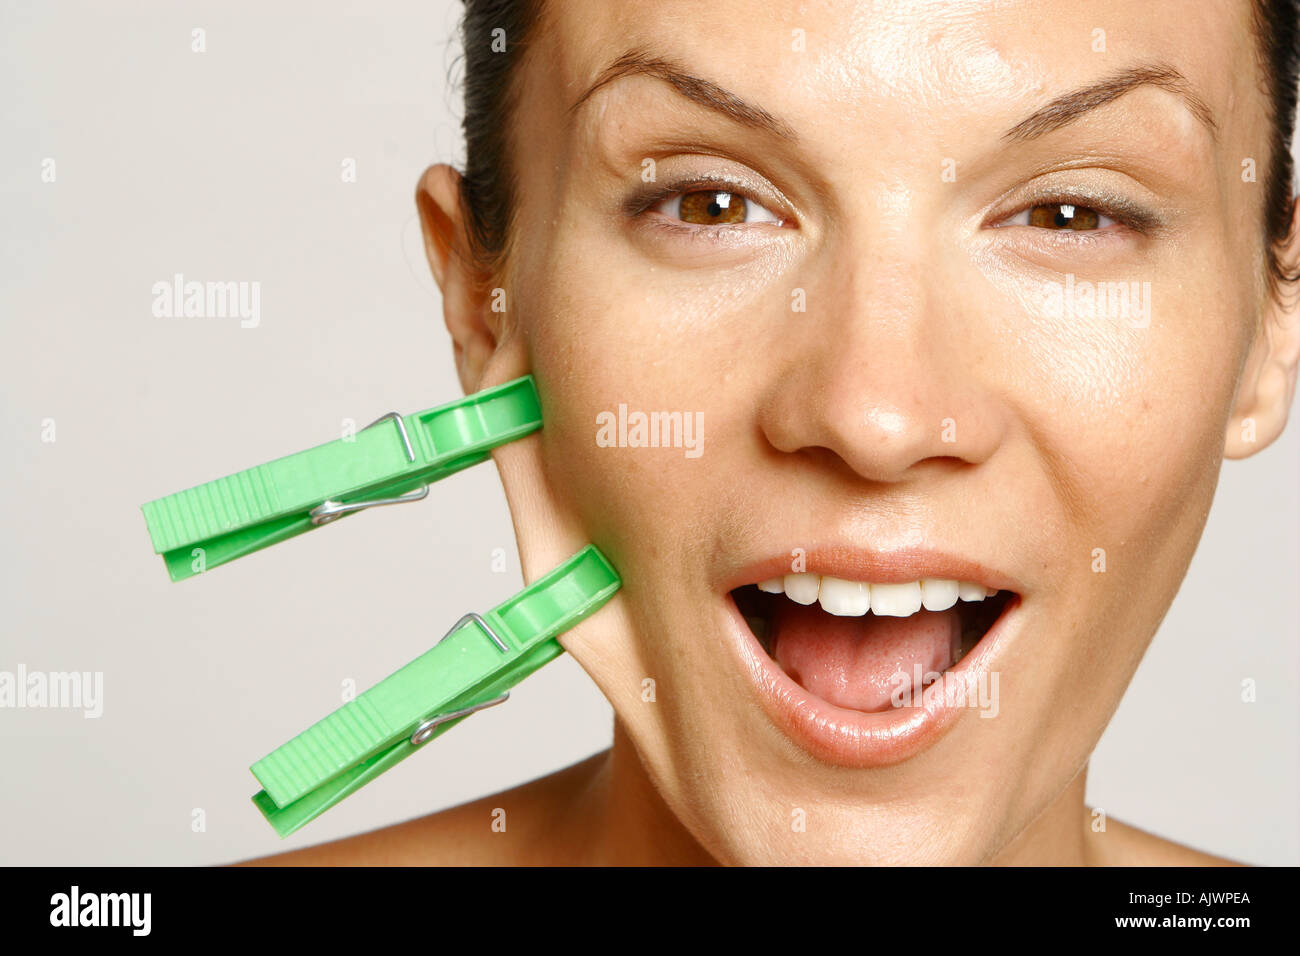 beauty head shot of a woman with two green pegs attached to her cheek - Stock Image